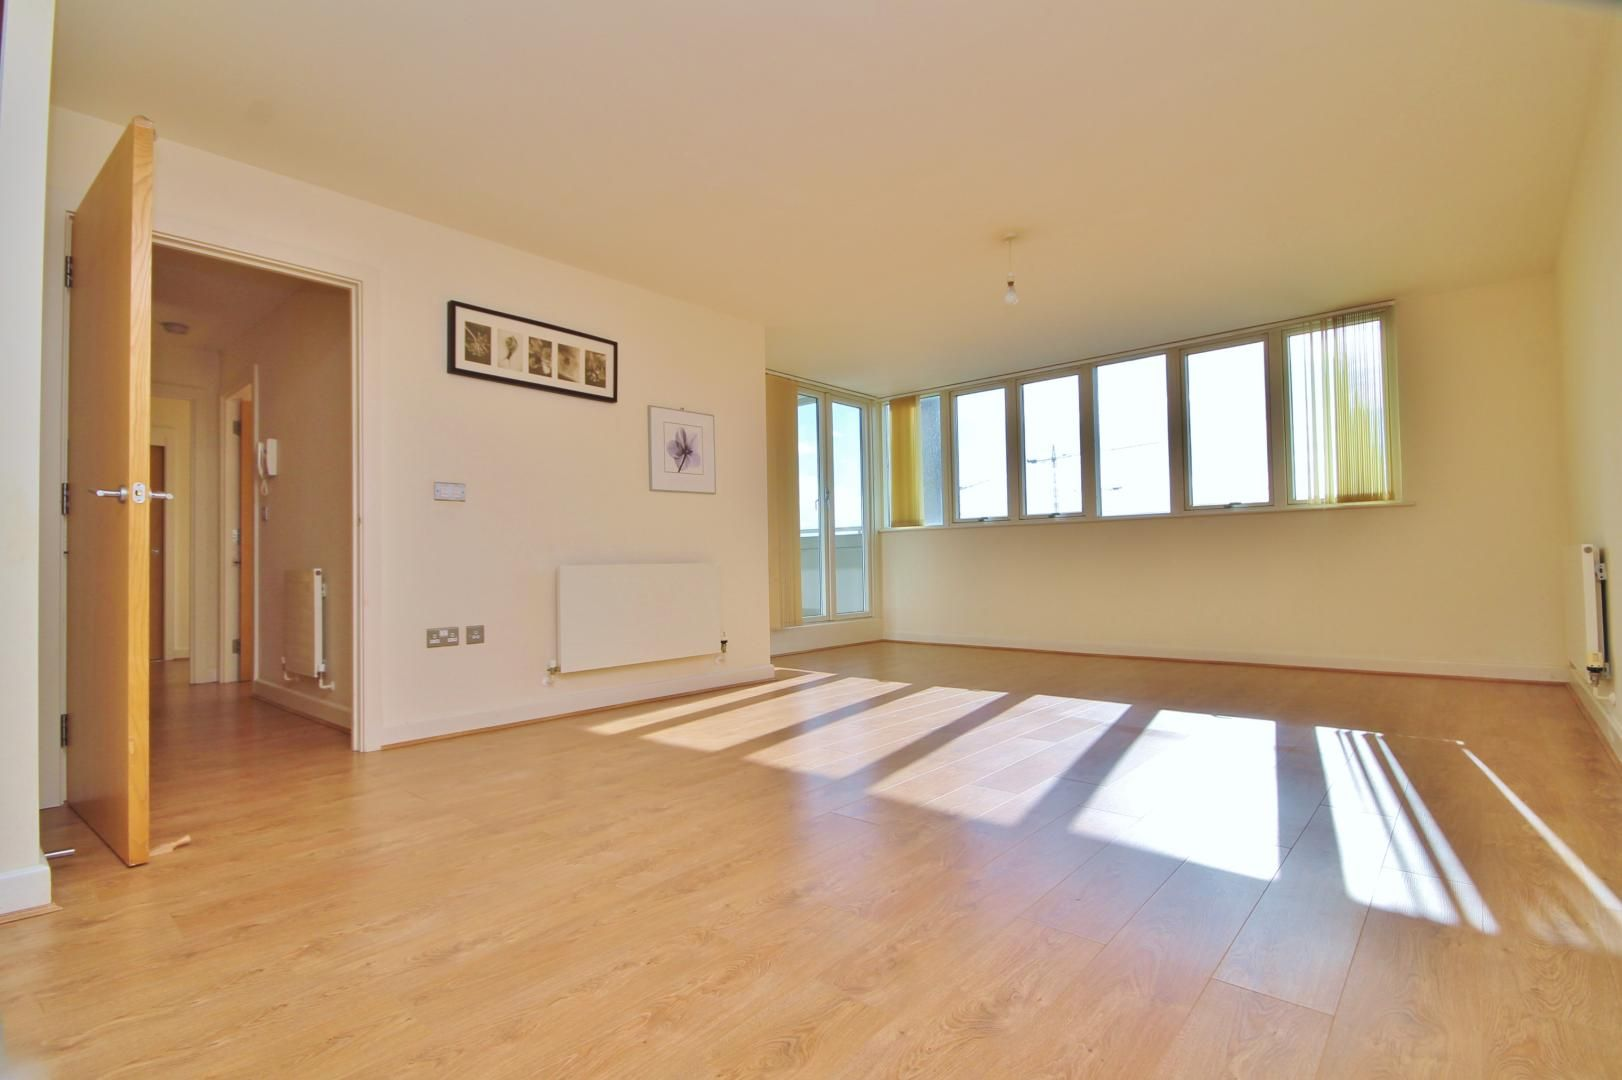 2 bed flat to rent in Rayleigh Road - Property Image 1